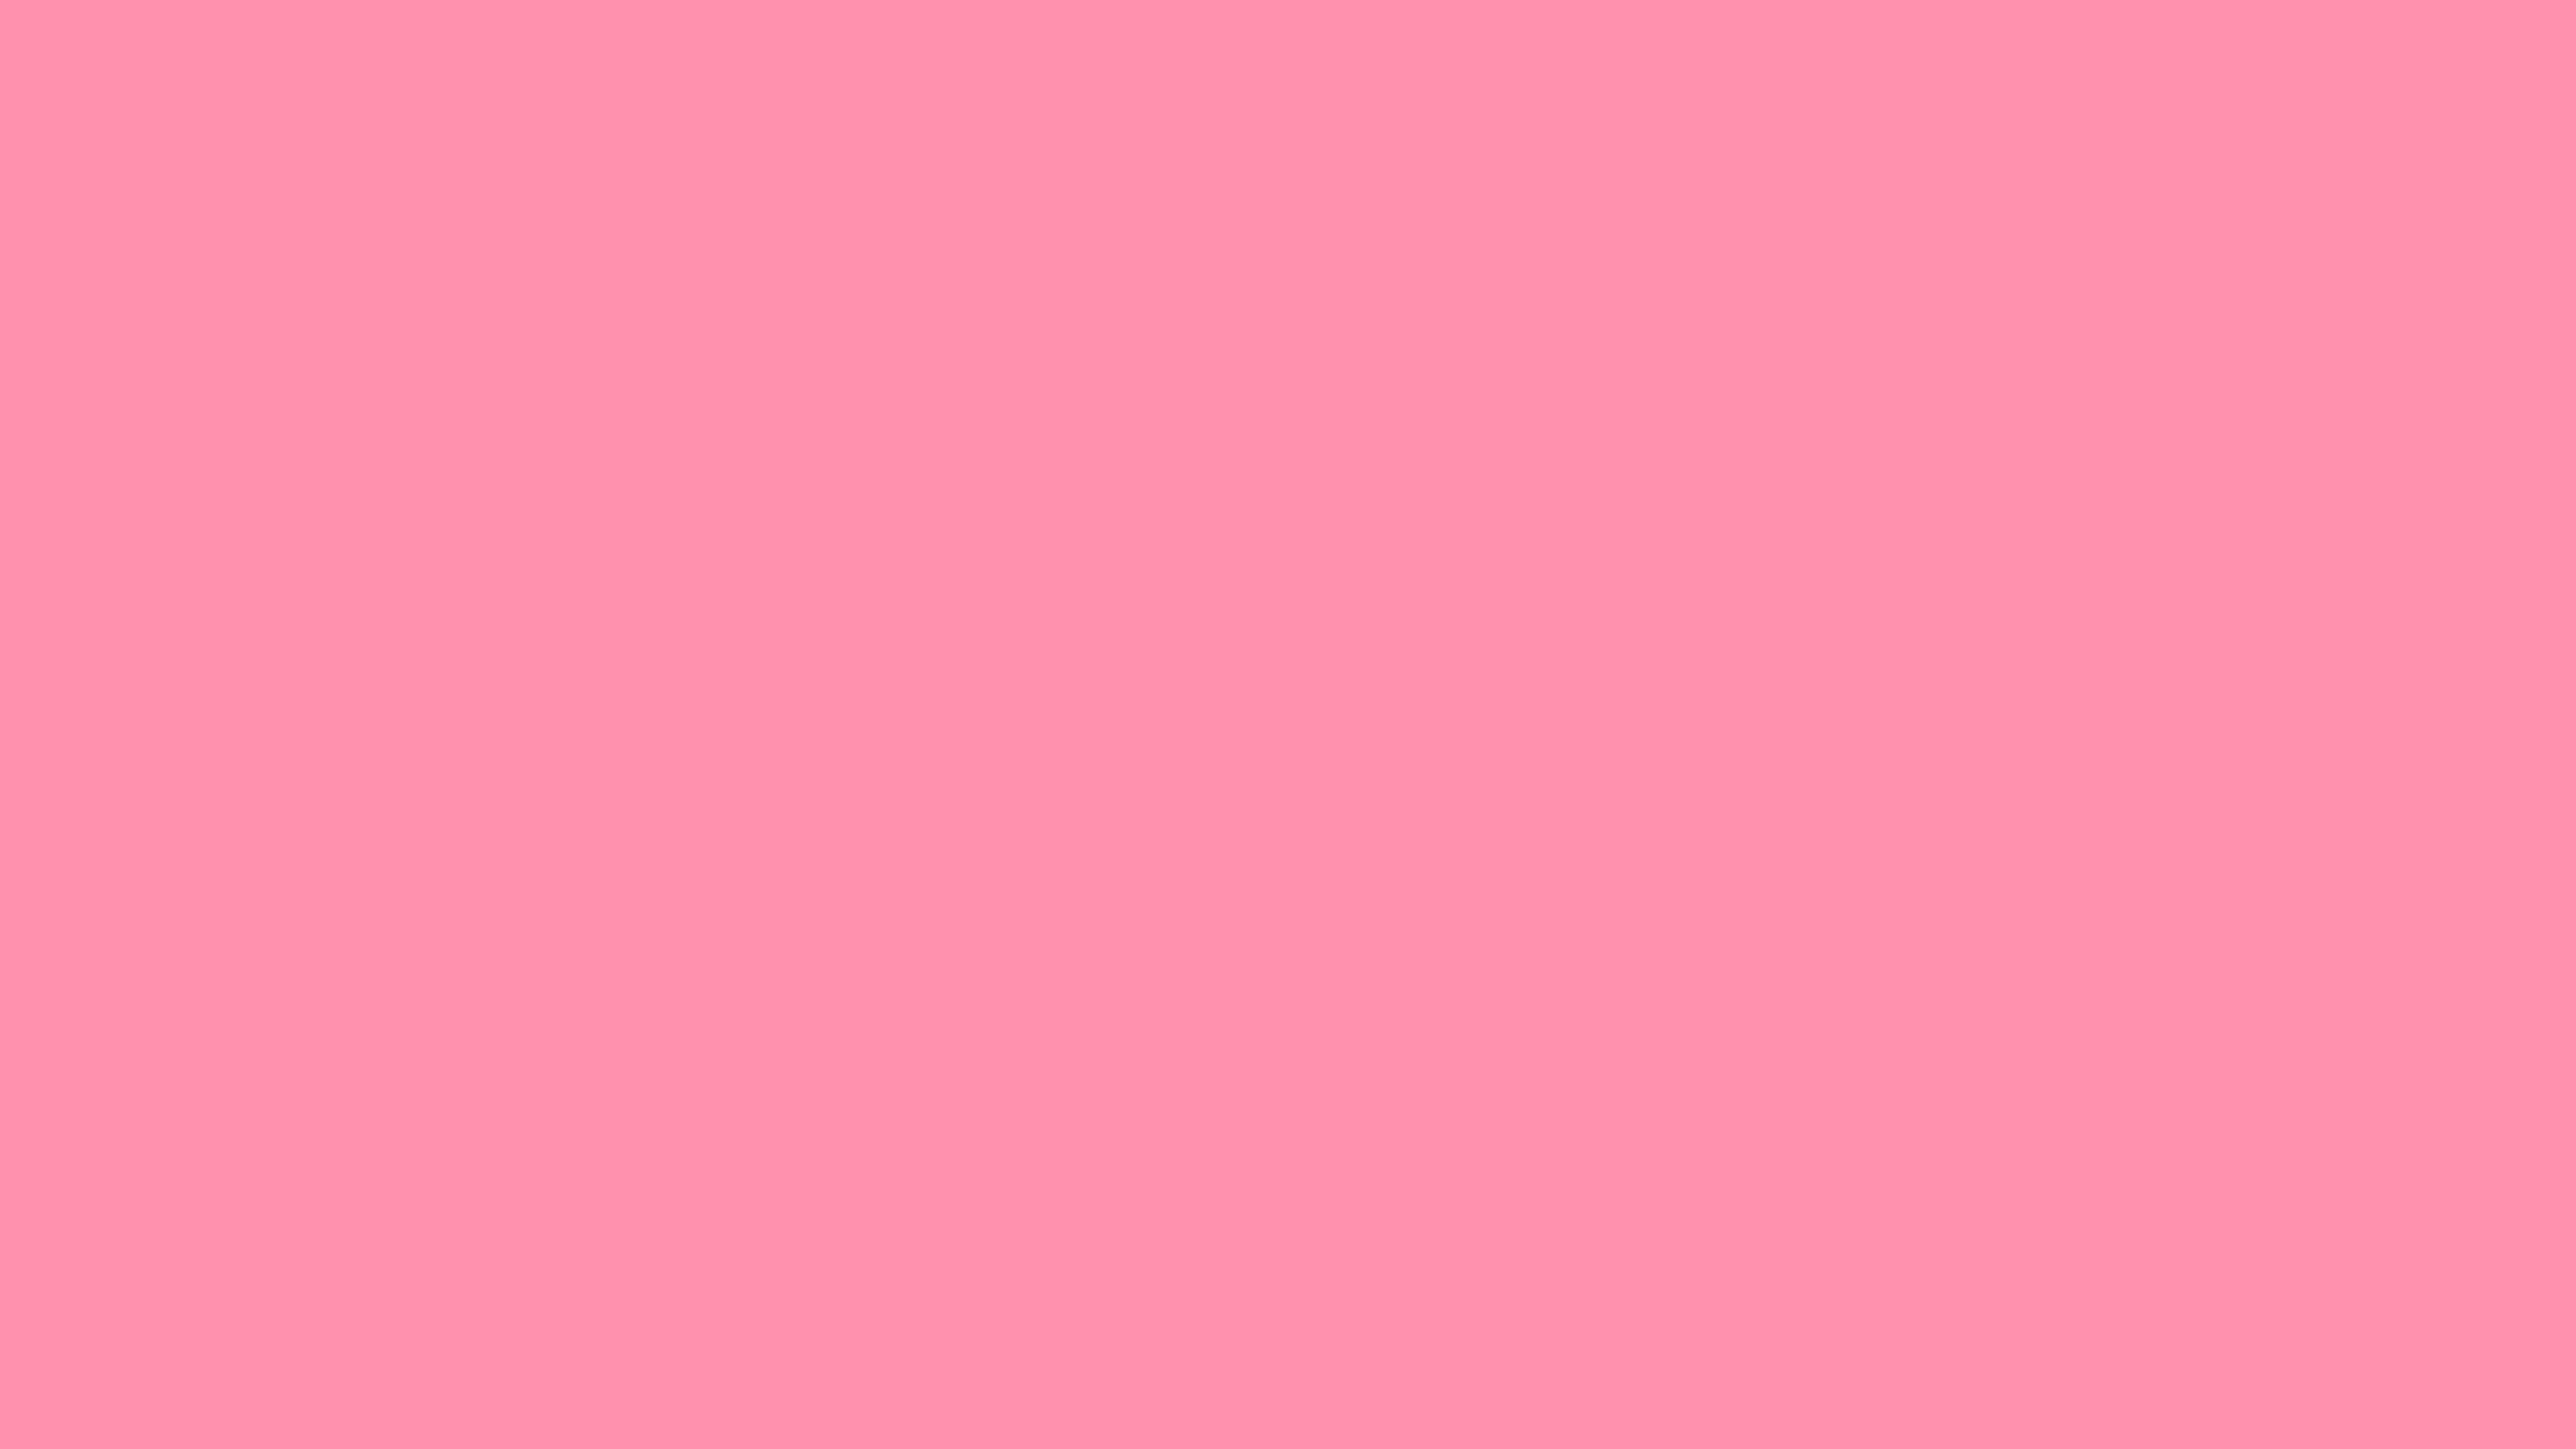 5120x2880 Schauss Pink Solid Color Background